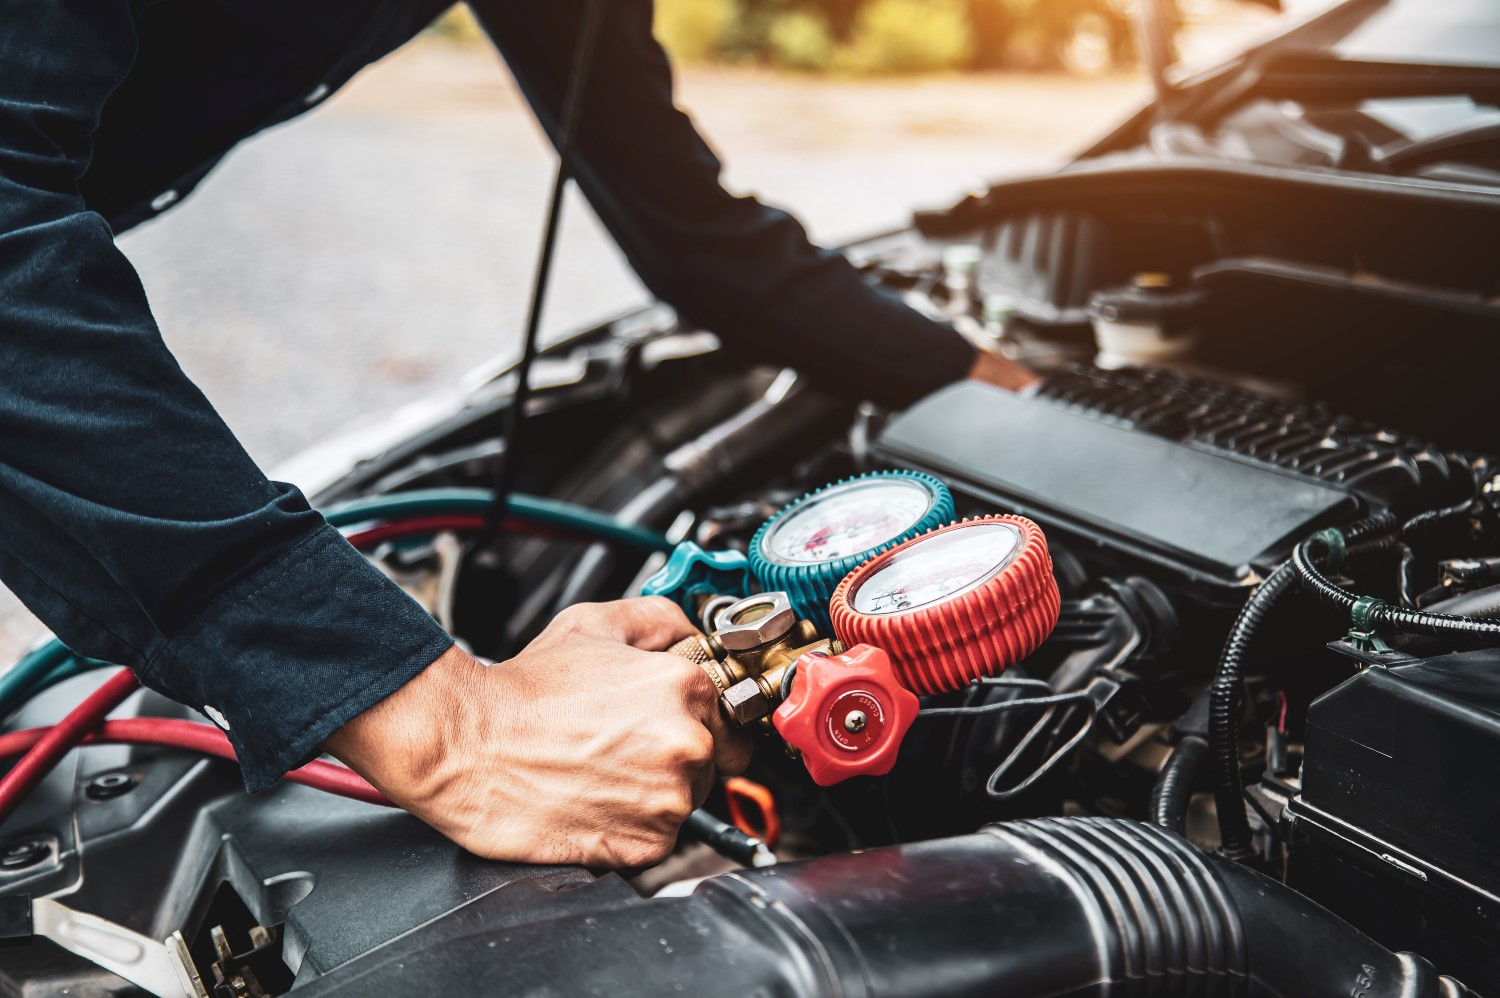 stock-photo-close-up-hand-of-auto-mechanic-are-to-use-measuring-manifold-gauge-for-filling-car-air-conditioners-1911240553-min